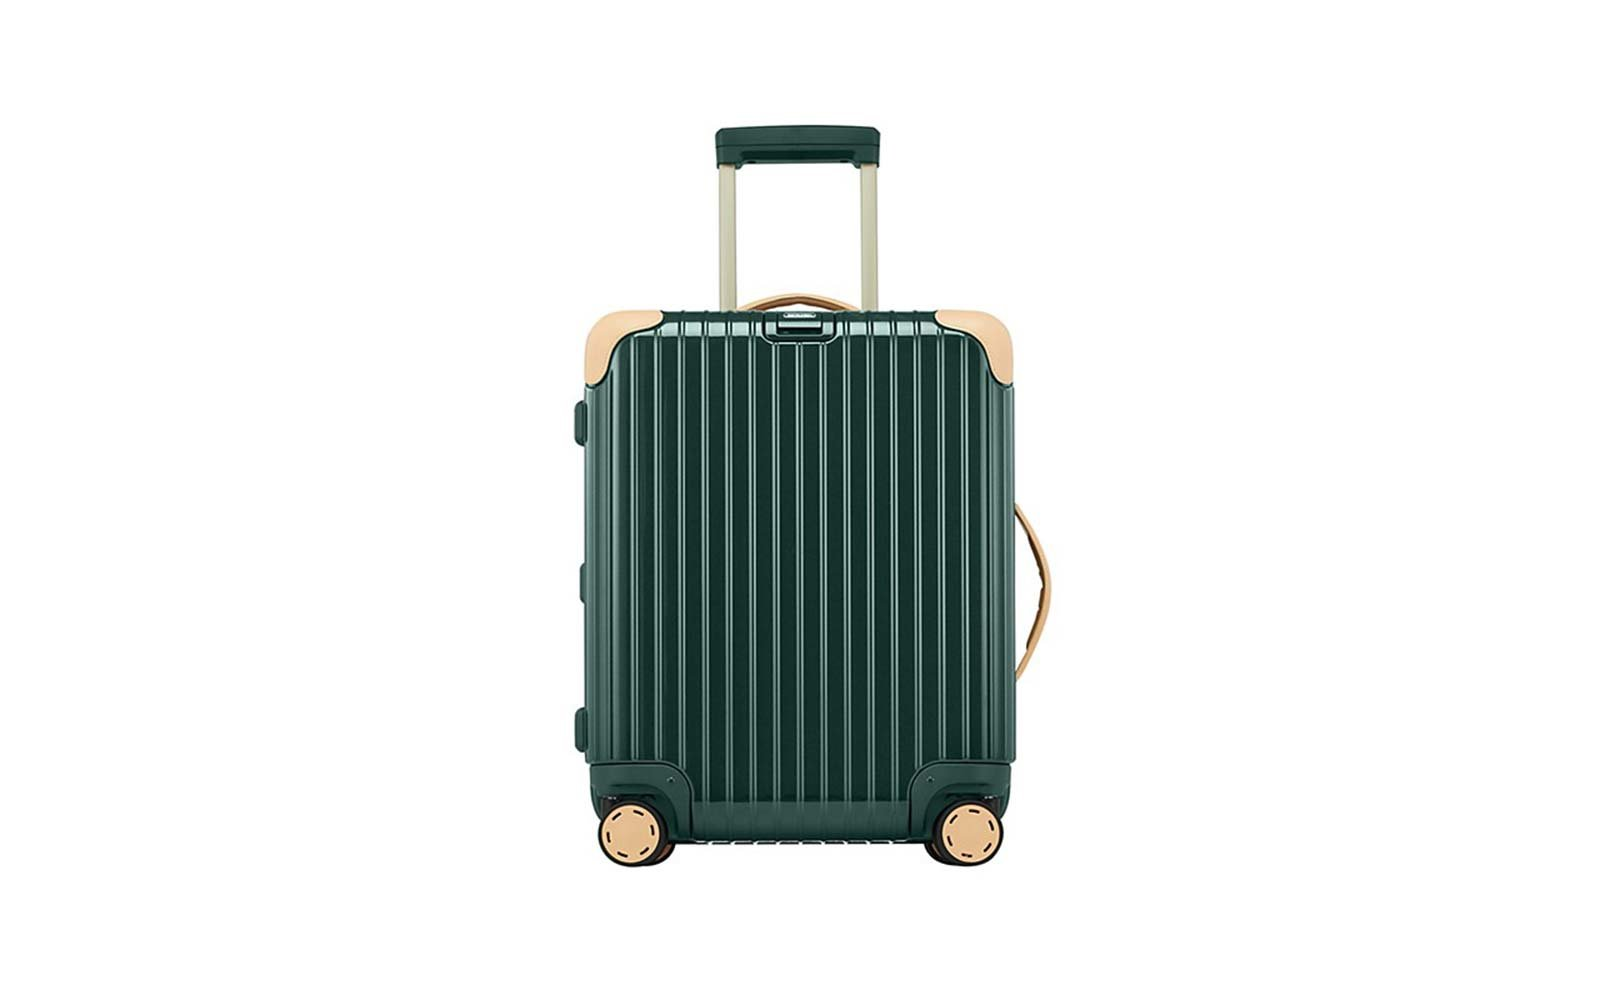 rimowa travel luggage